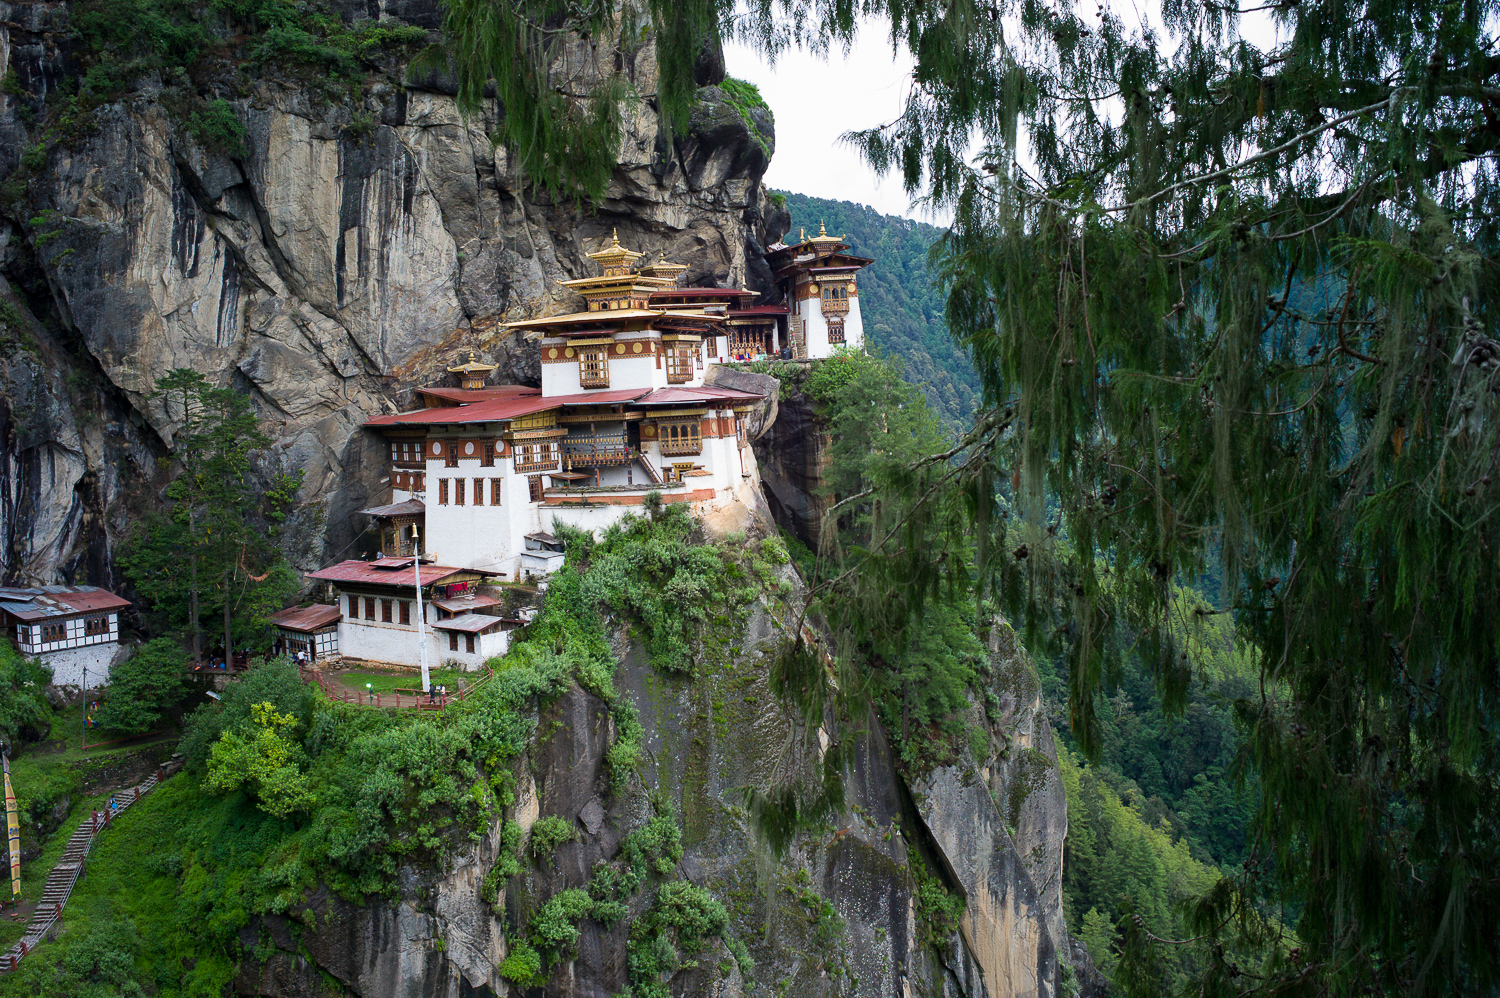 Paro Taktsang AKA Tiger's Nest, very unique monastery located in the valley, took us few hours to hike up there